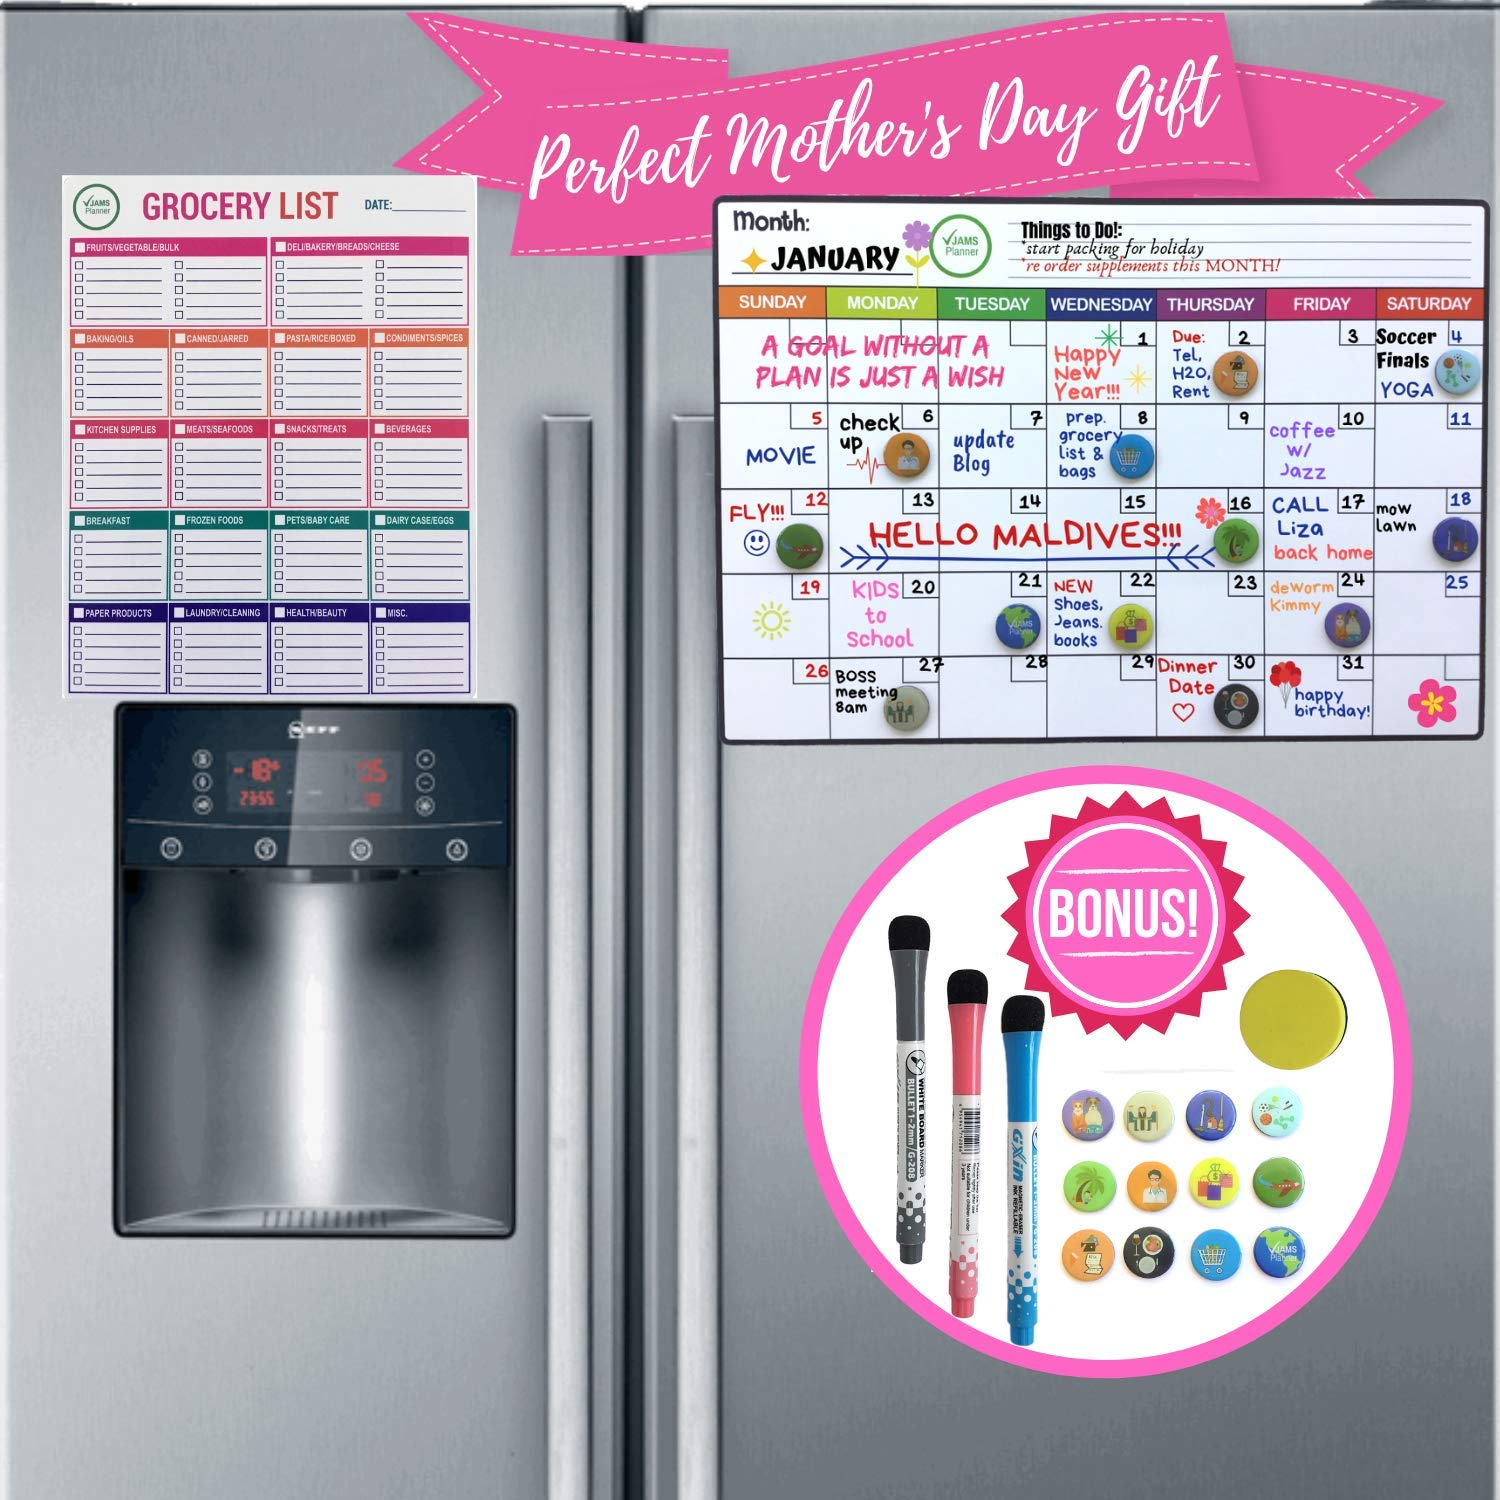 Magnetic Calendar for Refrigerator | Dry Erase Fridge Organizer Whiteboard with Kitchen Grocery List, 3 Fine Markers, 12 Icons & Eraser - 18 Pcs Set Recyclable | Smart Family Monthly & Weekly Planner